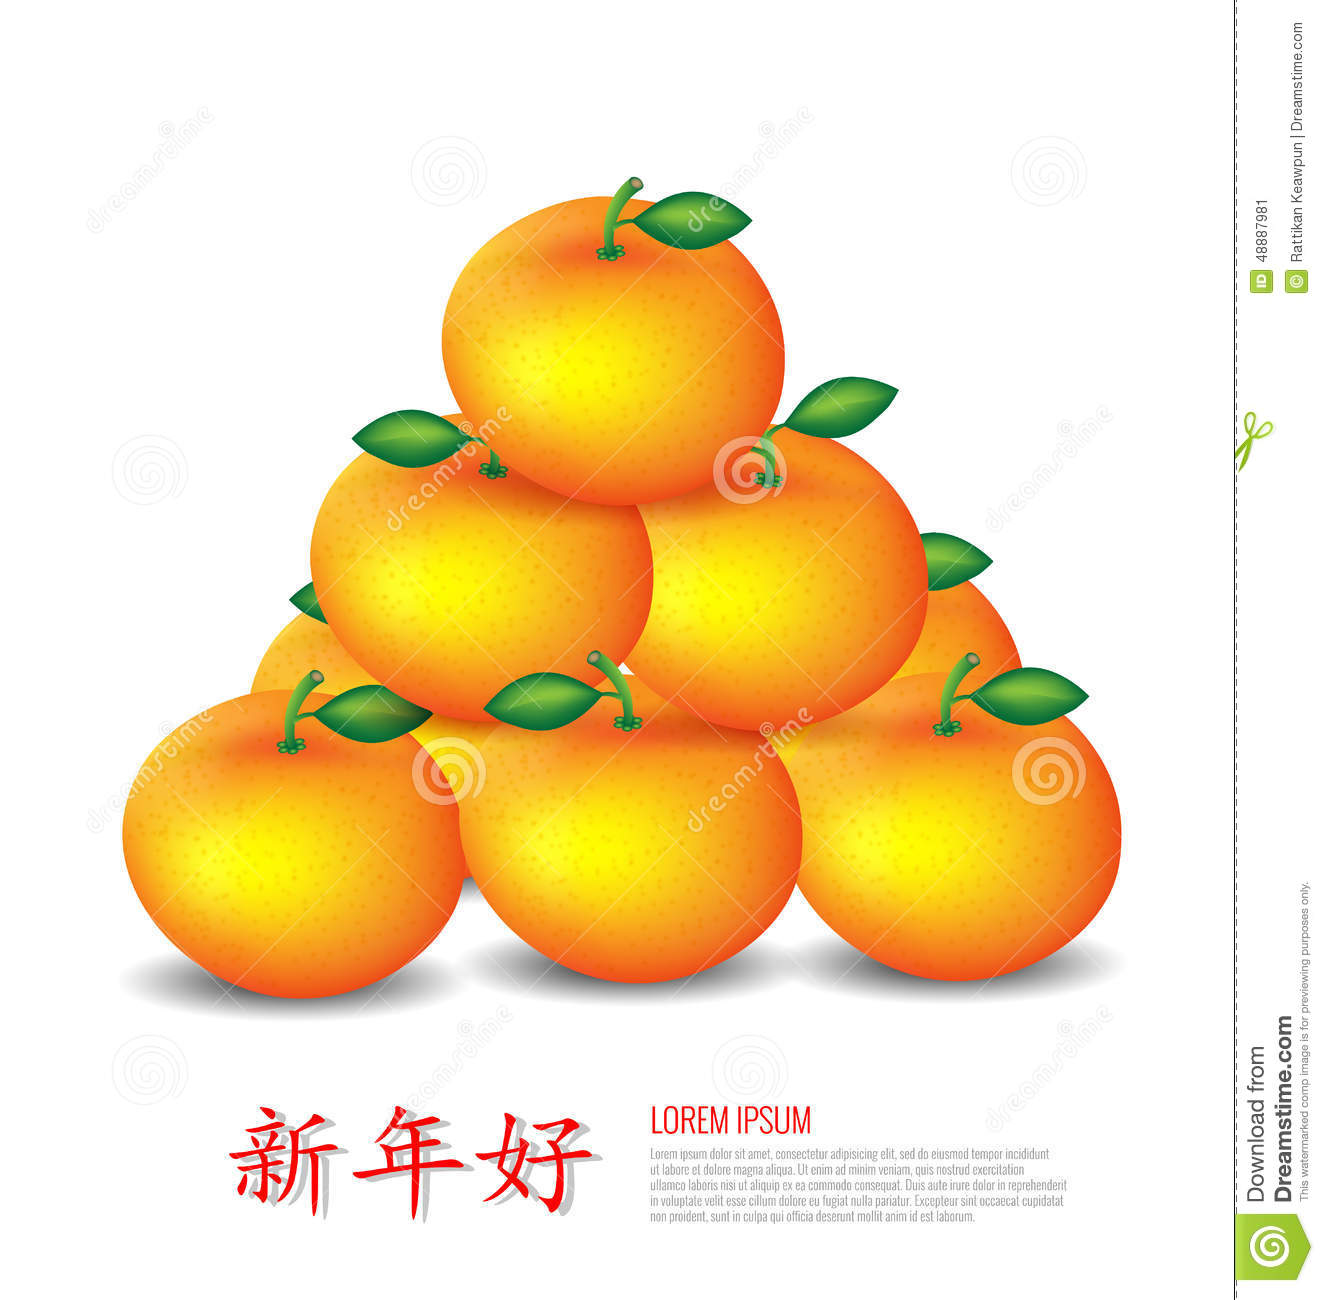 Chinese new year oranges clip art.